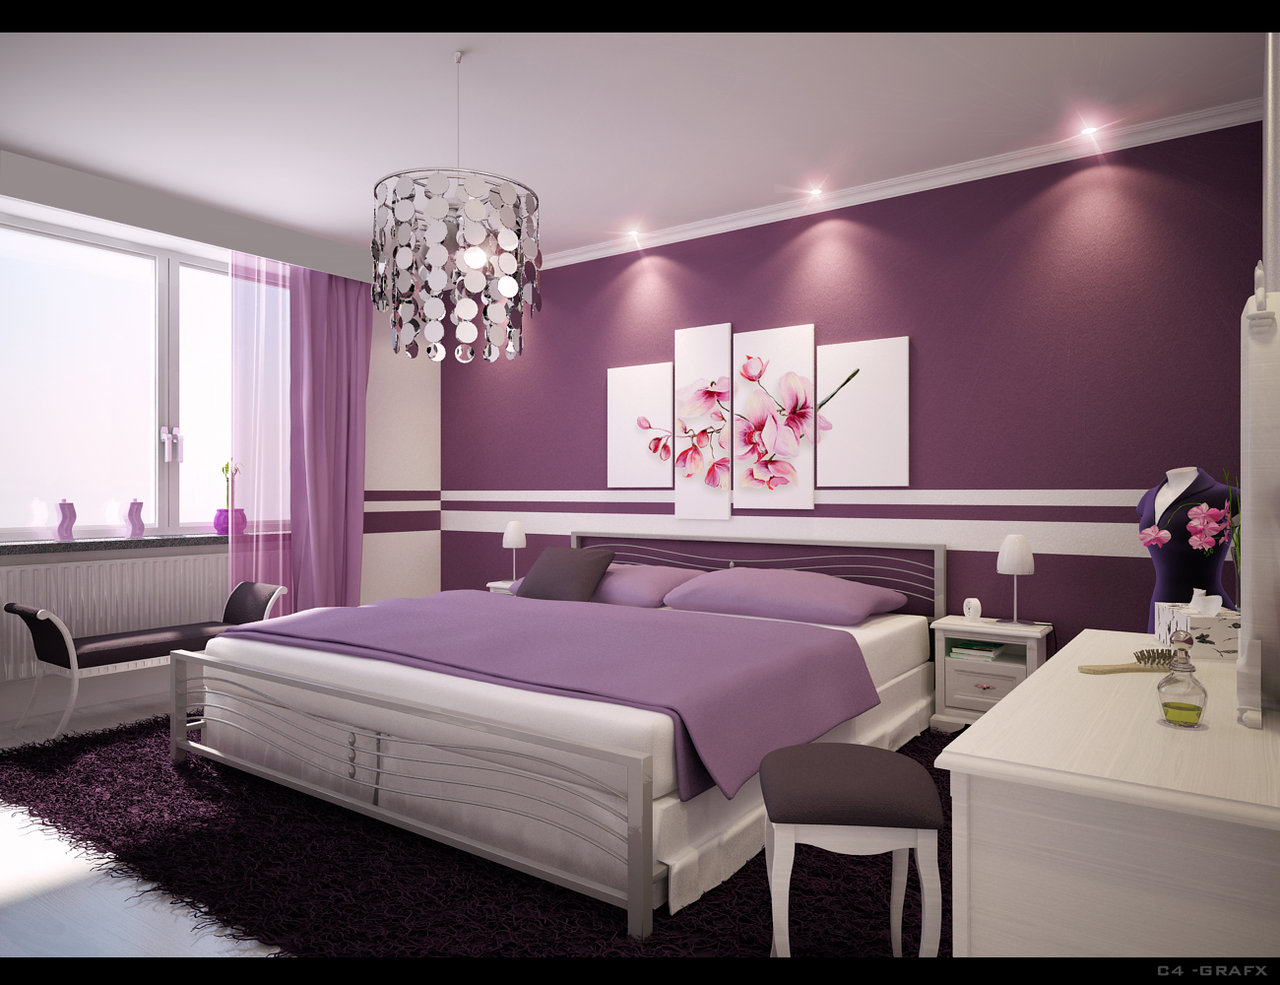 Living Room Design Pictures Philippines | Living Room ...